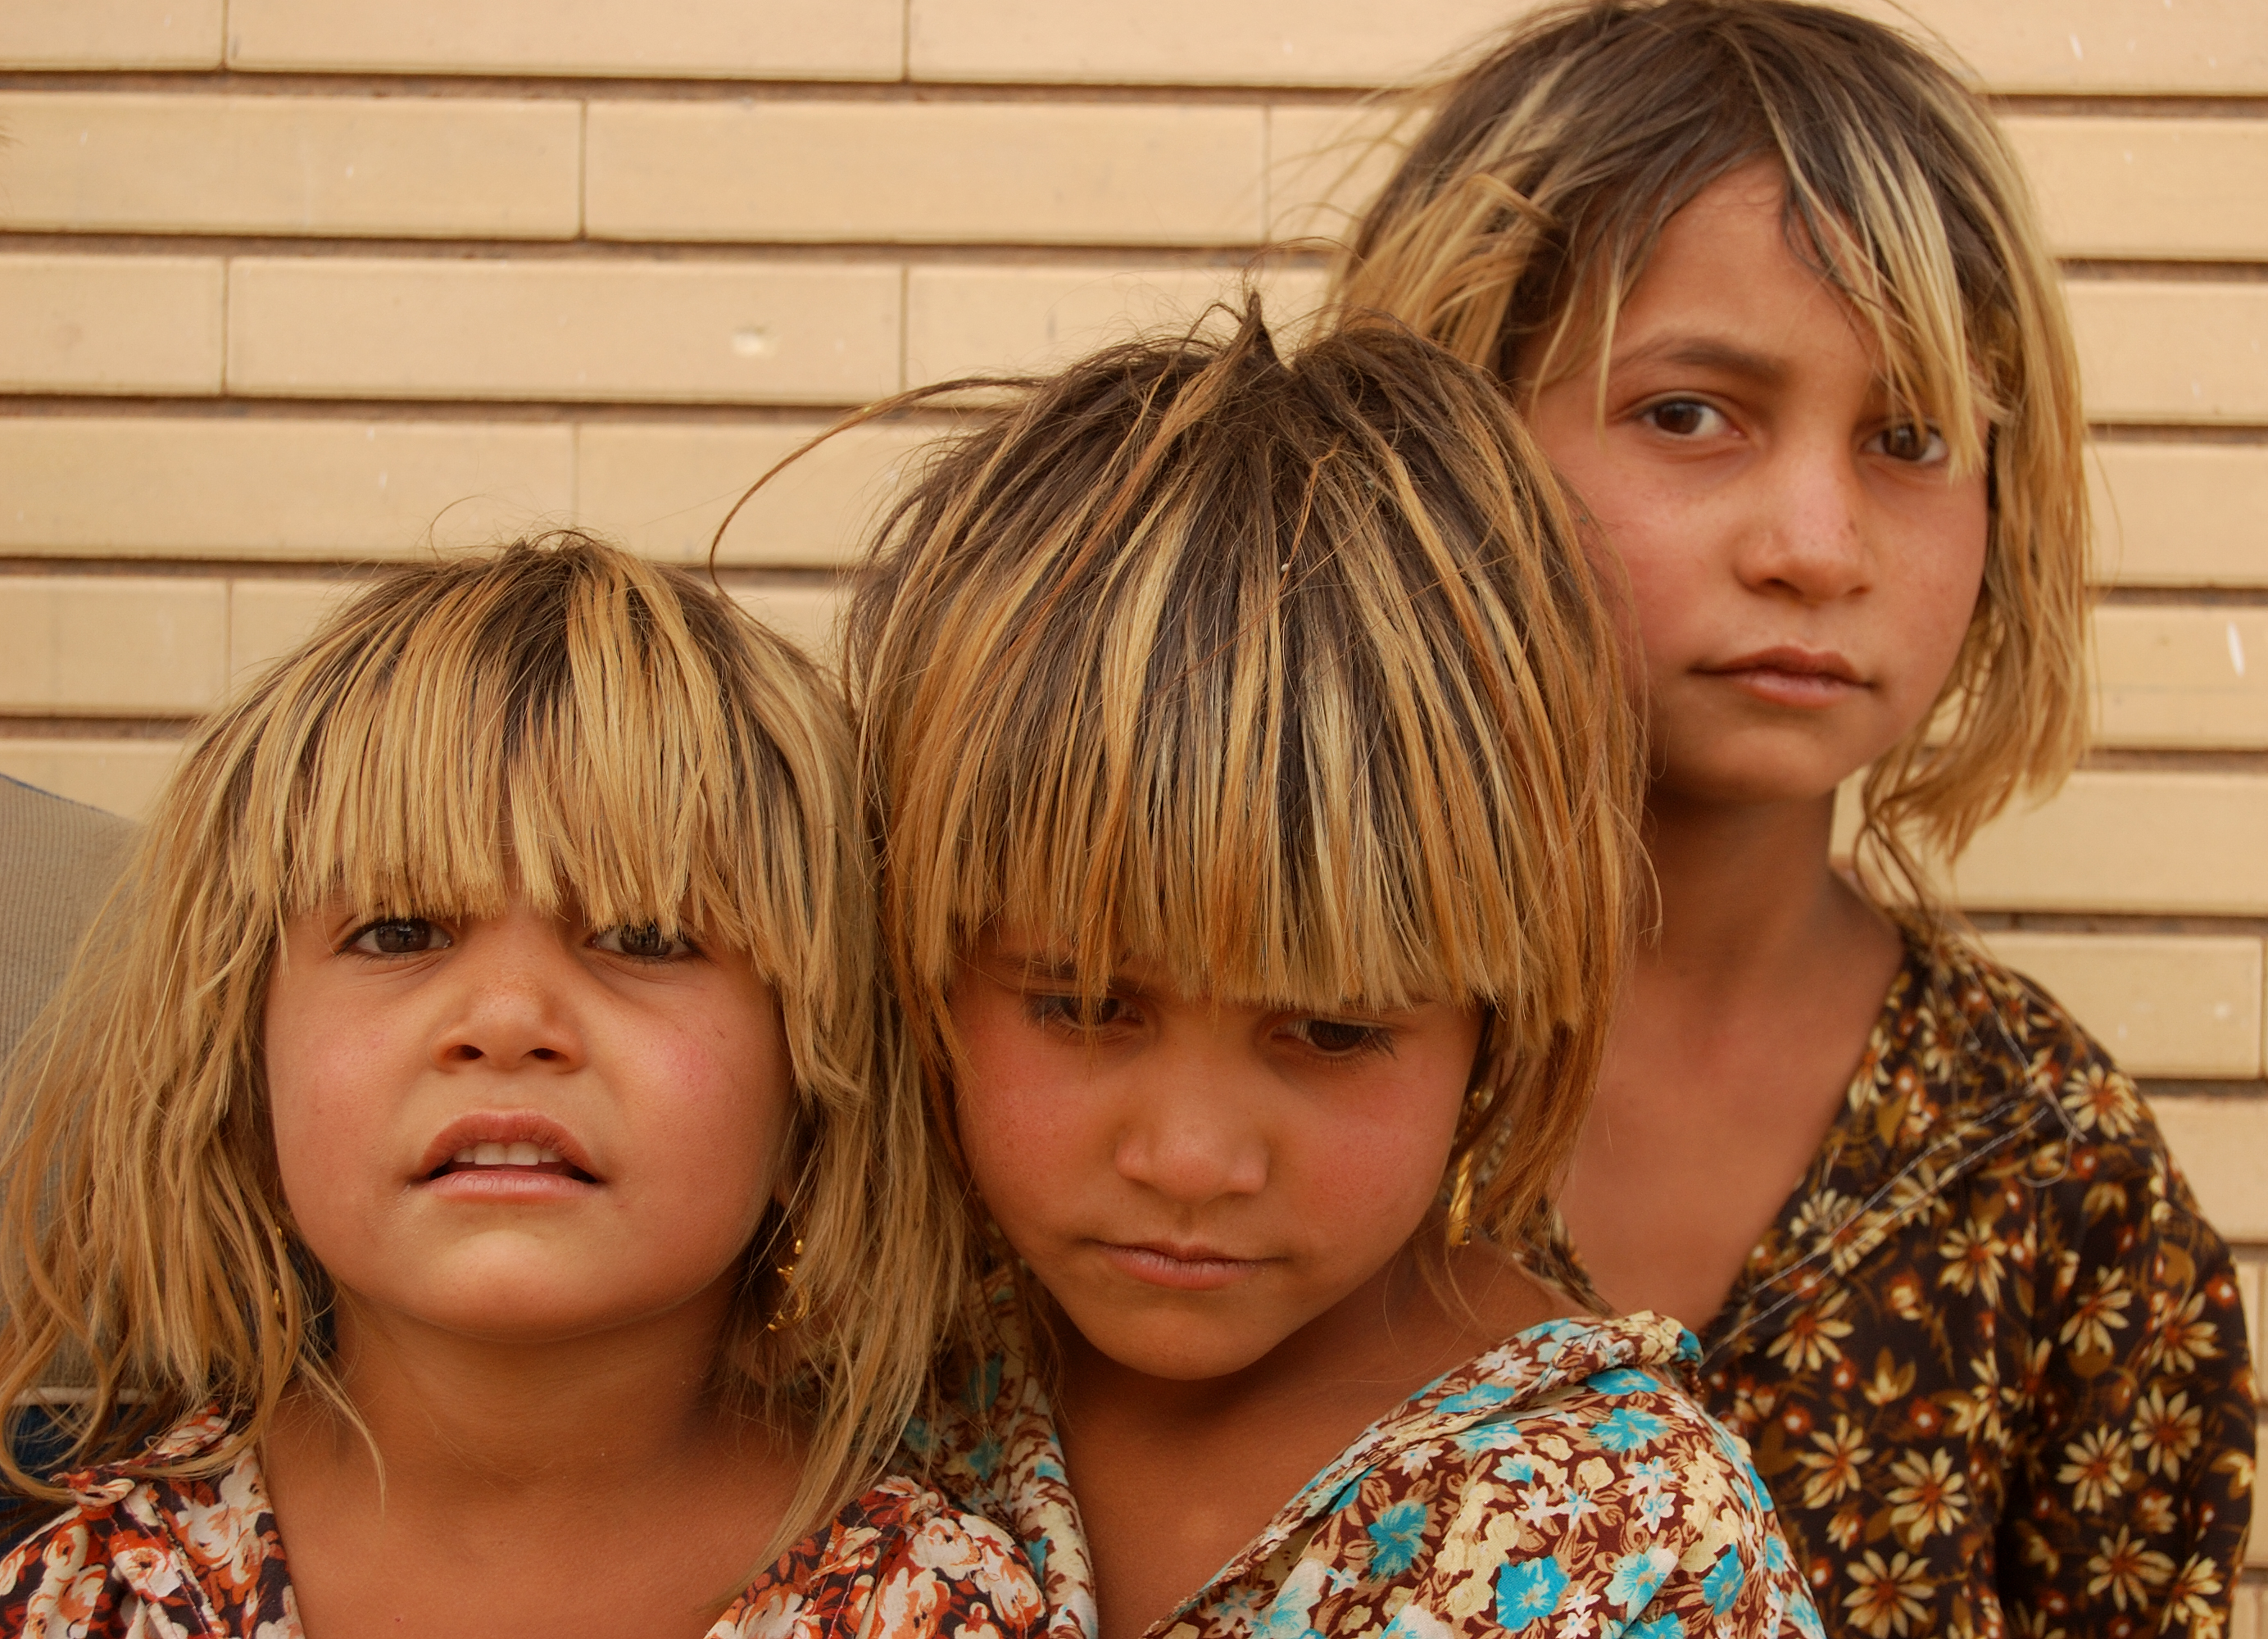 Iran.Three Iraqi refugee sisters